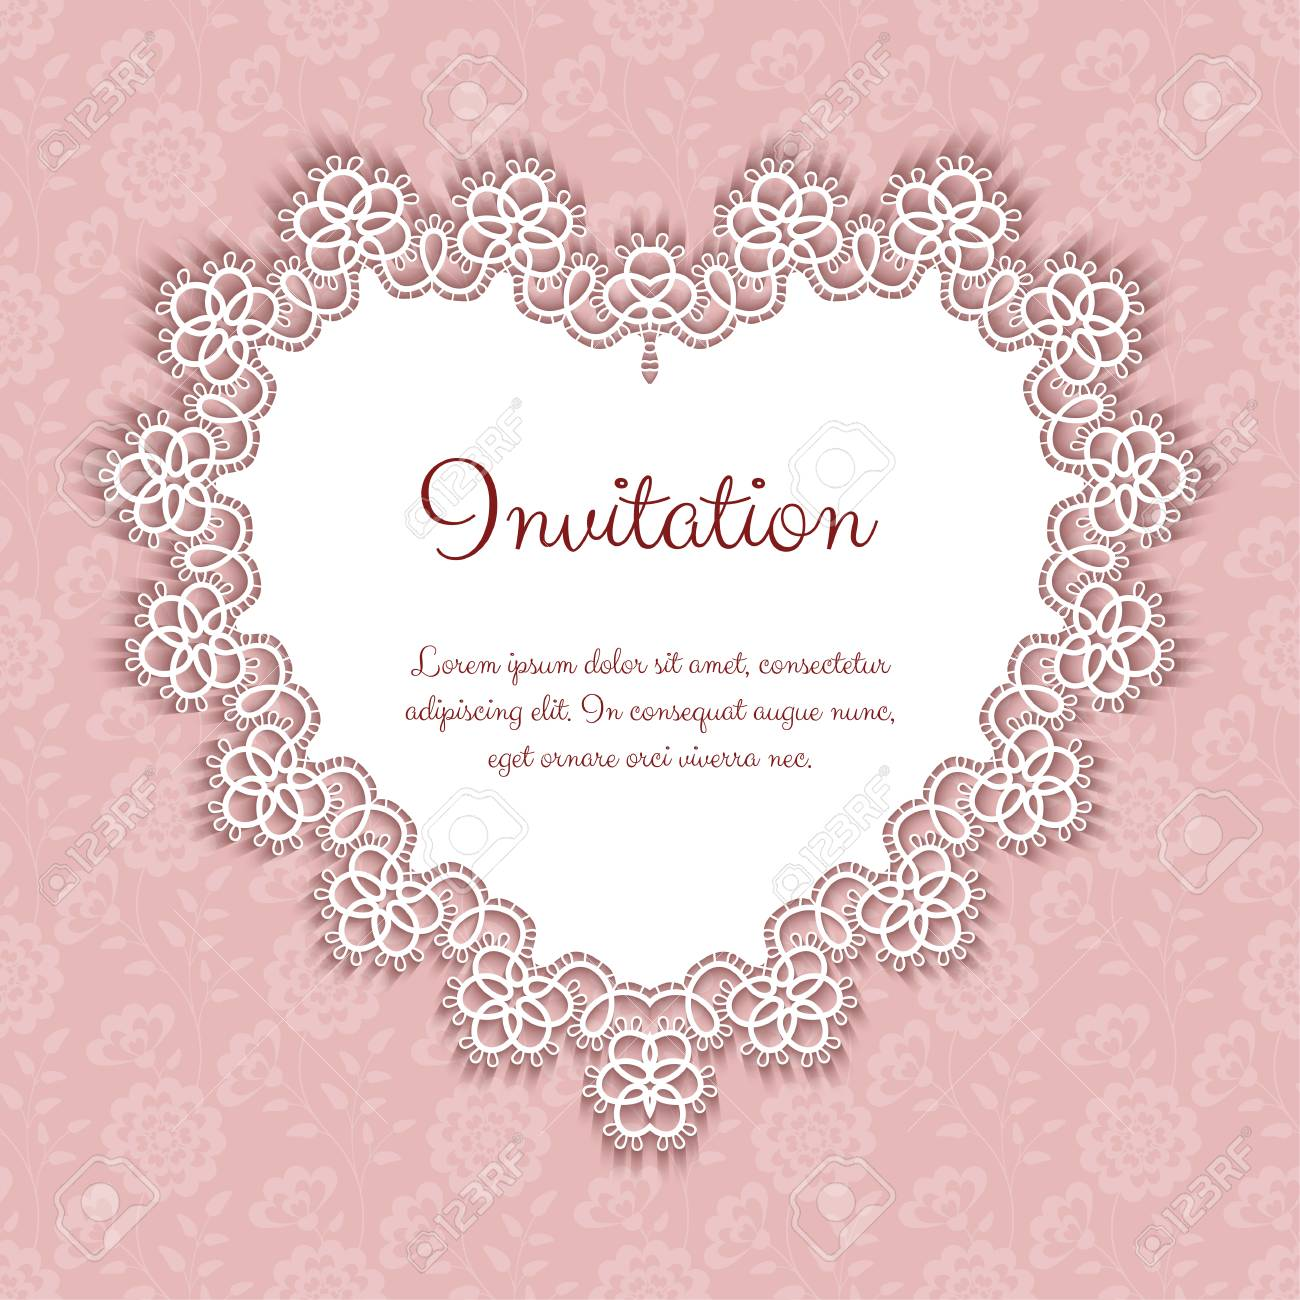 Elegant Invitation Or Greeting Card Template With Lace Heart